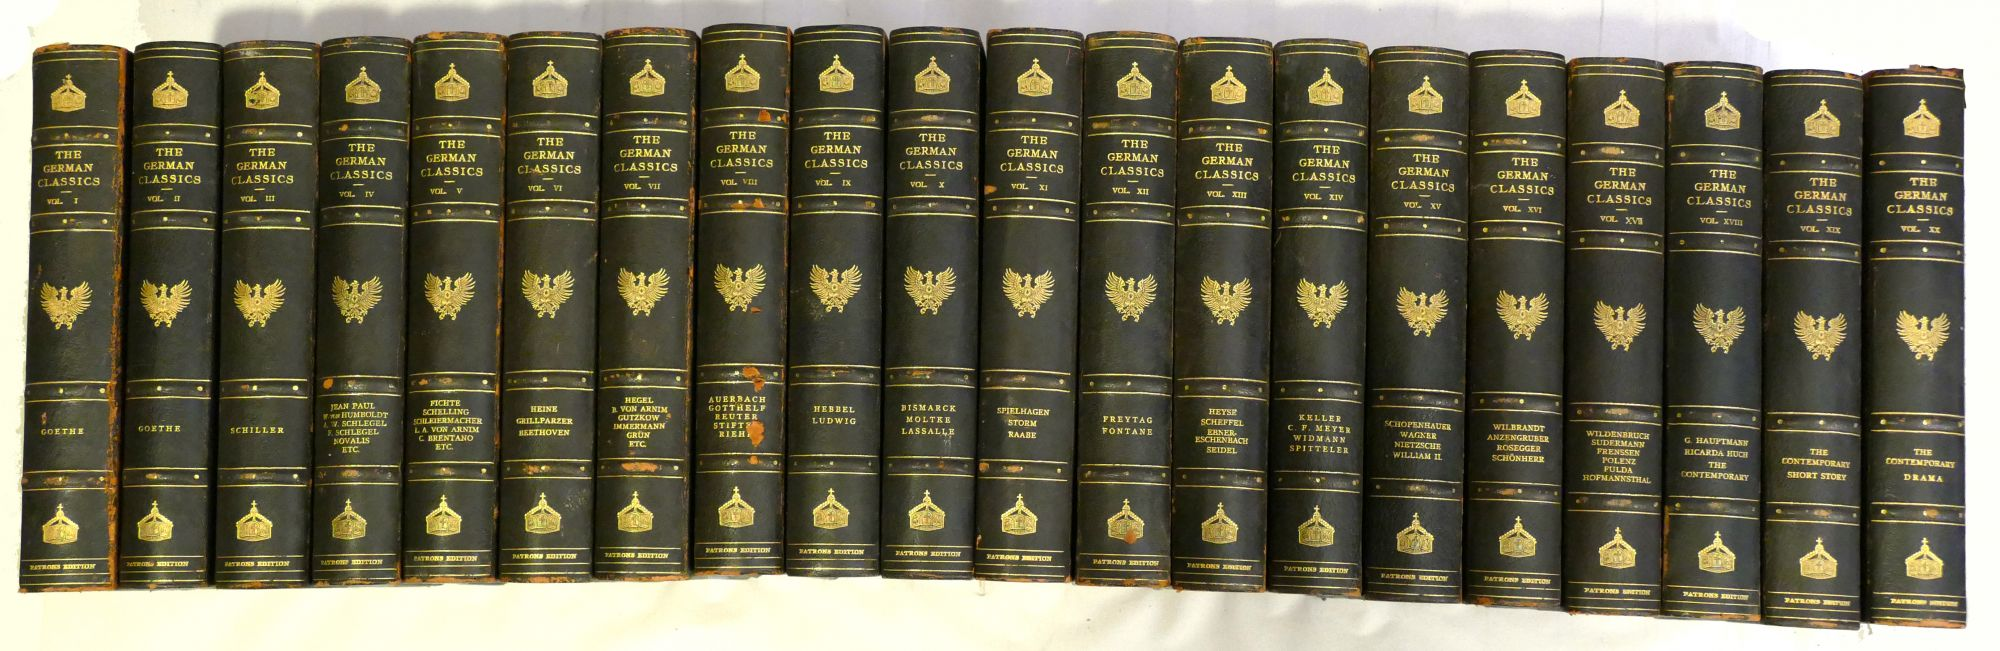 THE GERMAN CLASSICS Masterpieces of German Literature [Complete 20 Volume Set